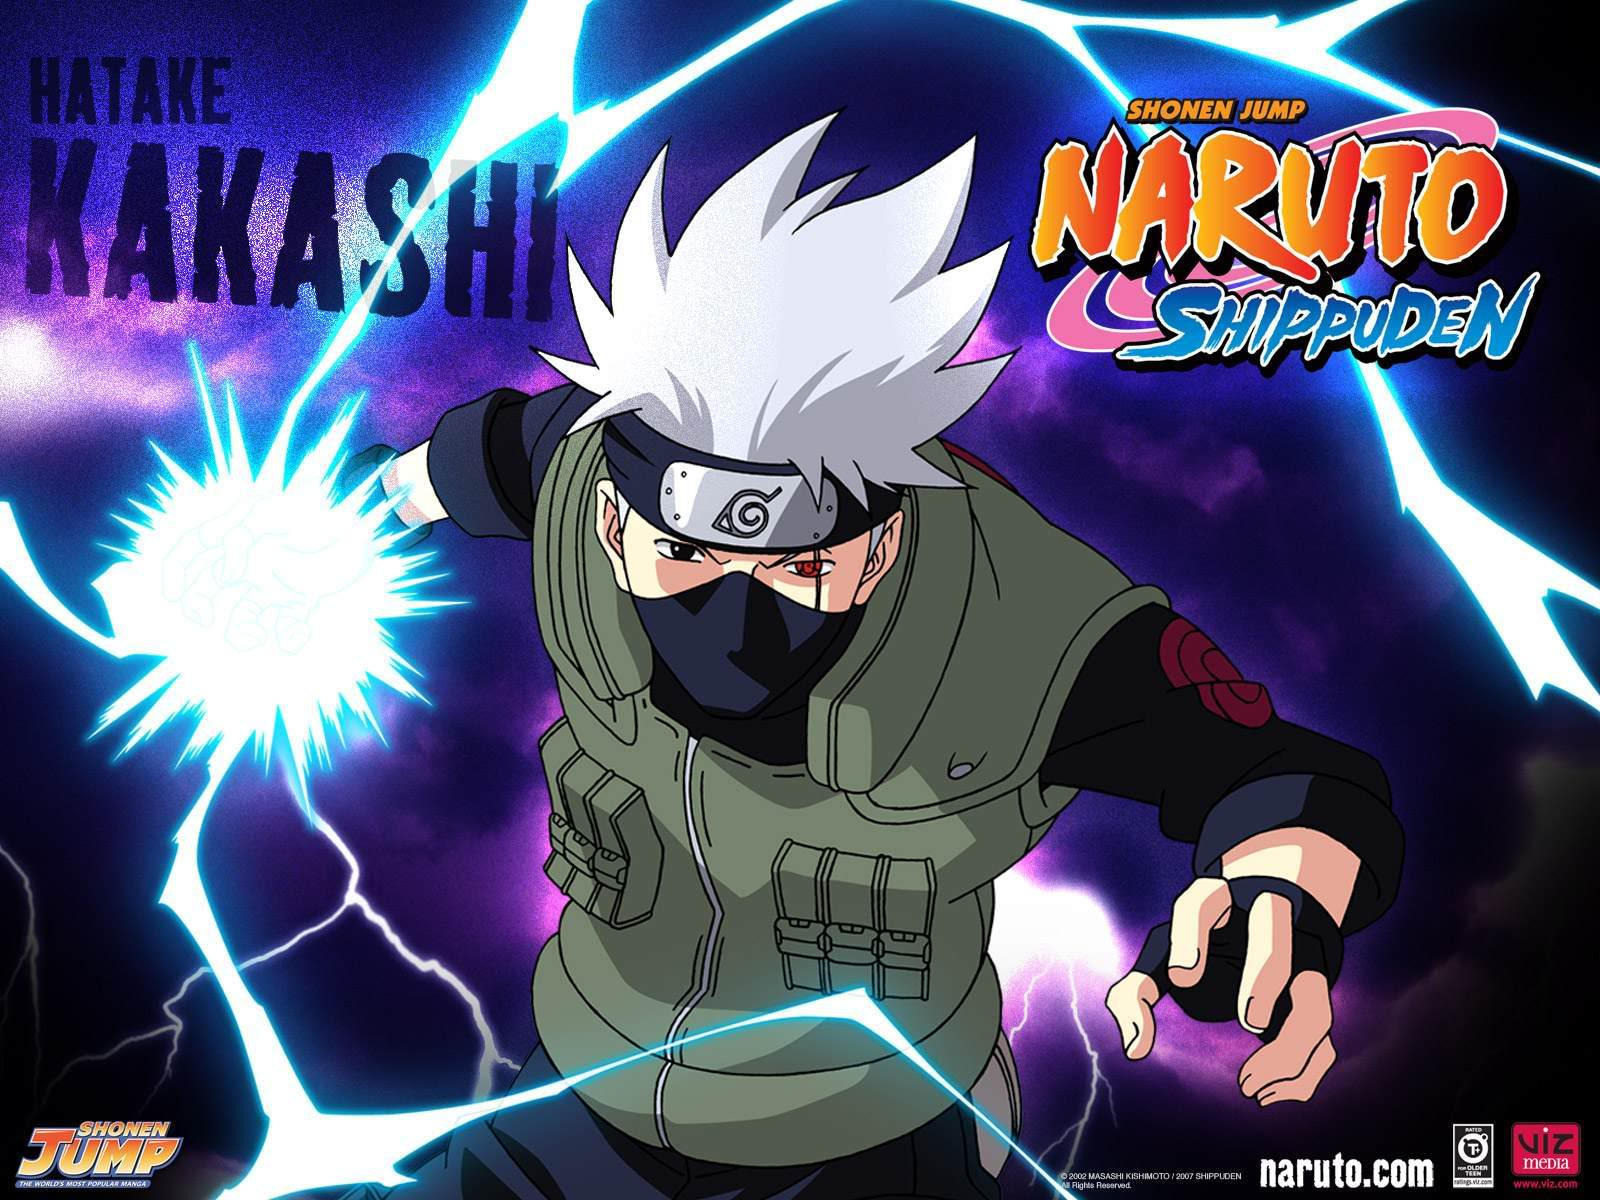 Naruto Shippuden Episode 354 Subtitle Indonesia / English | Tutturuu.